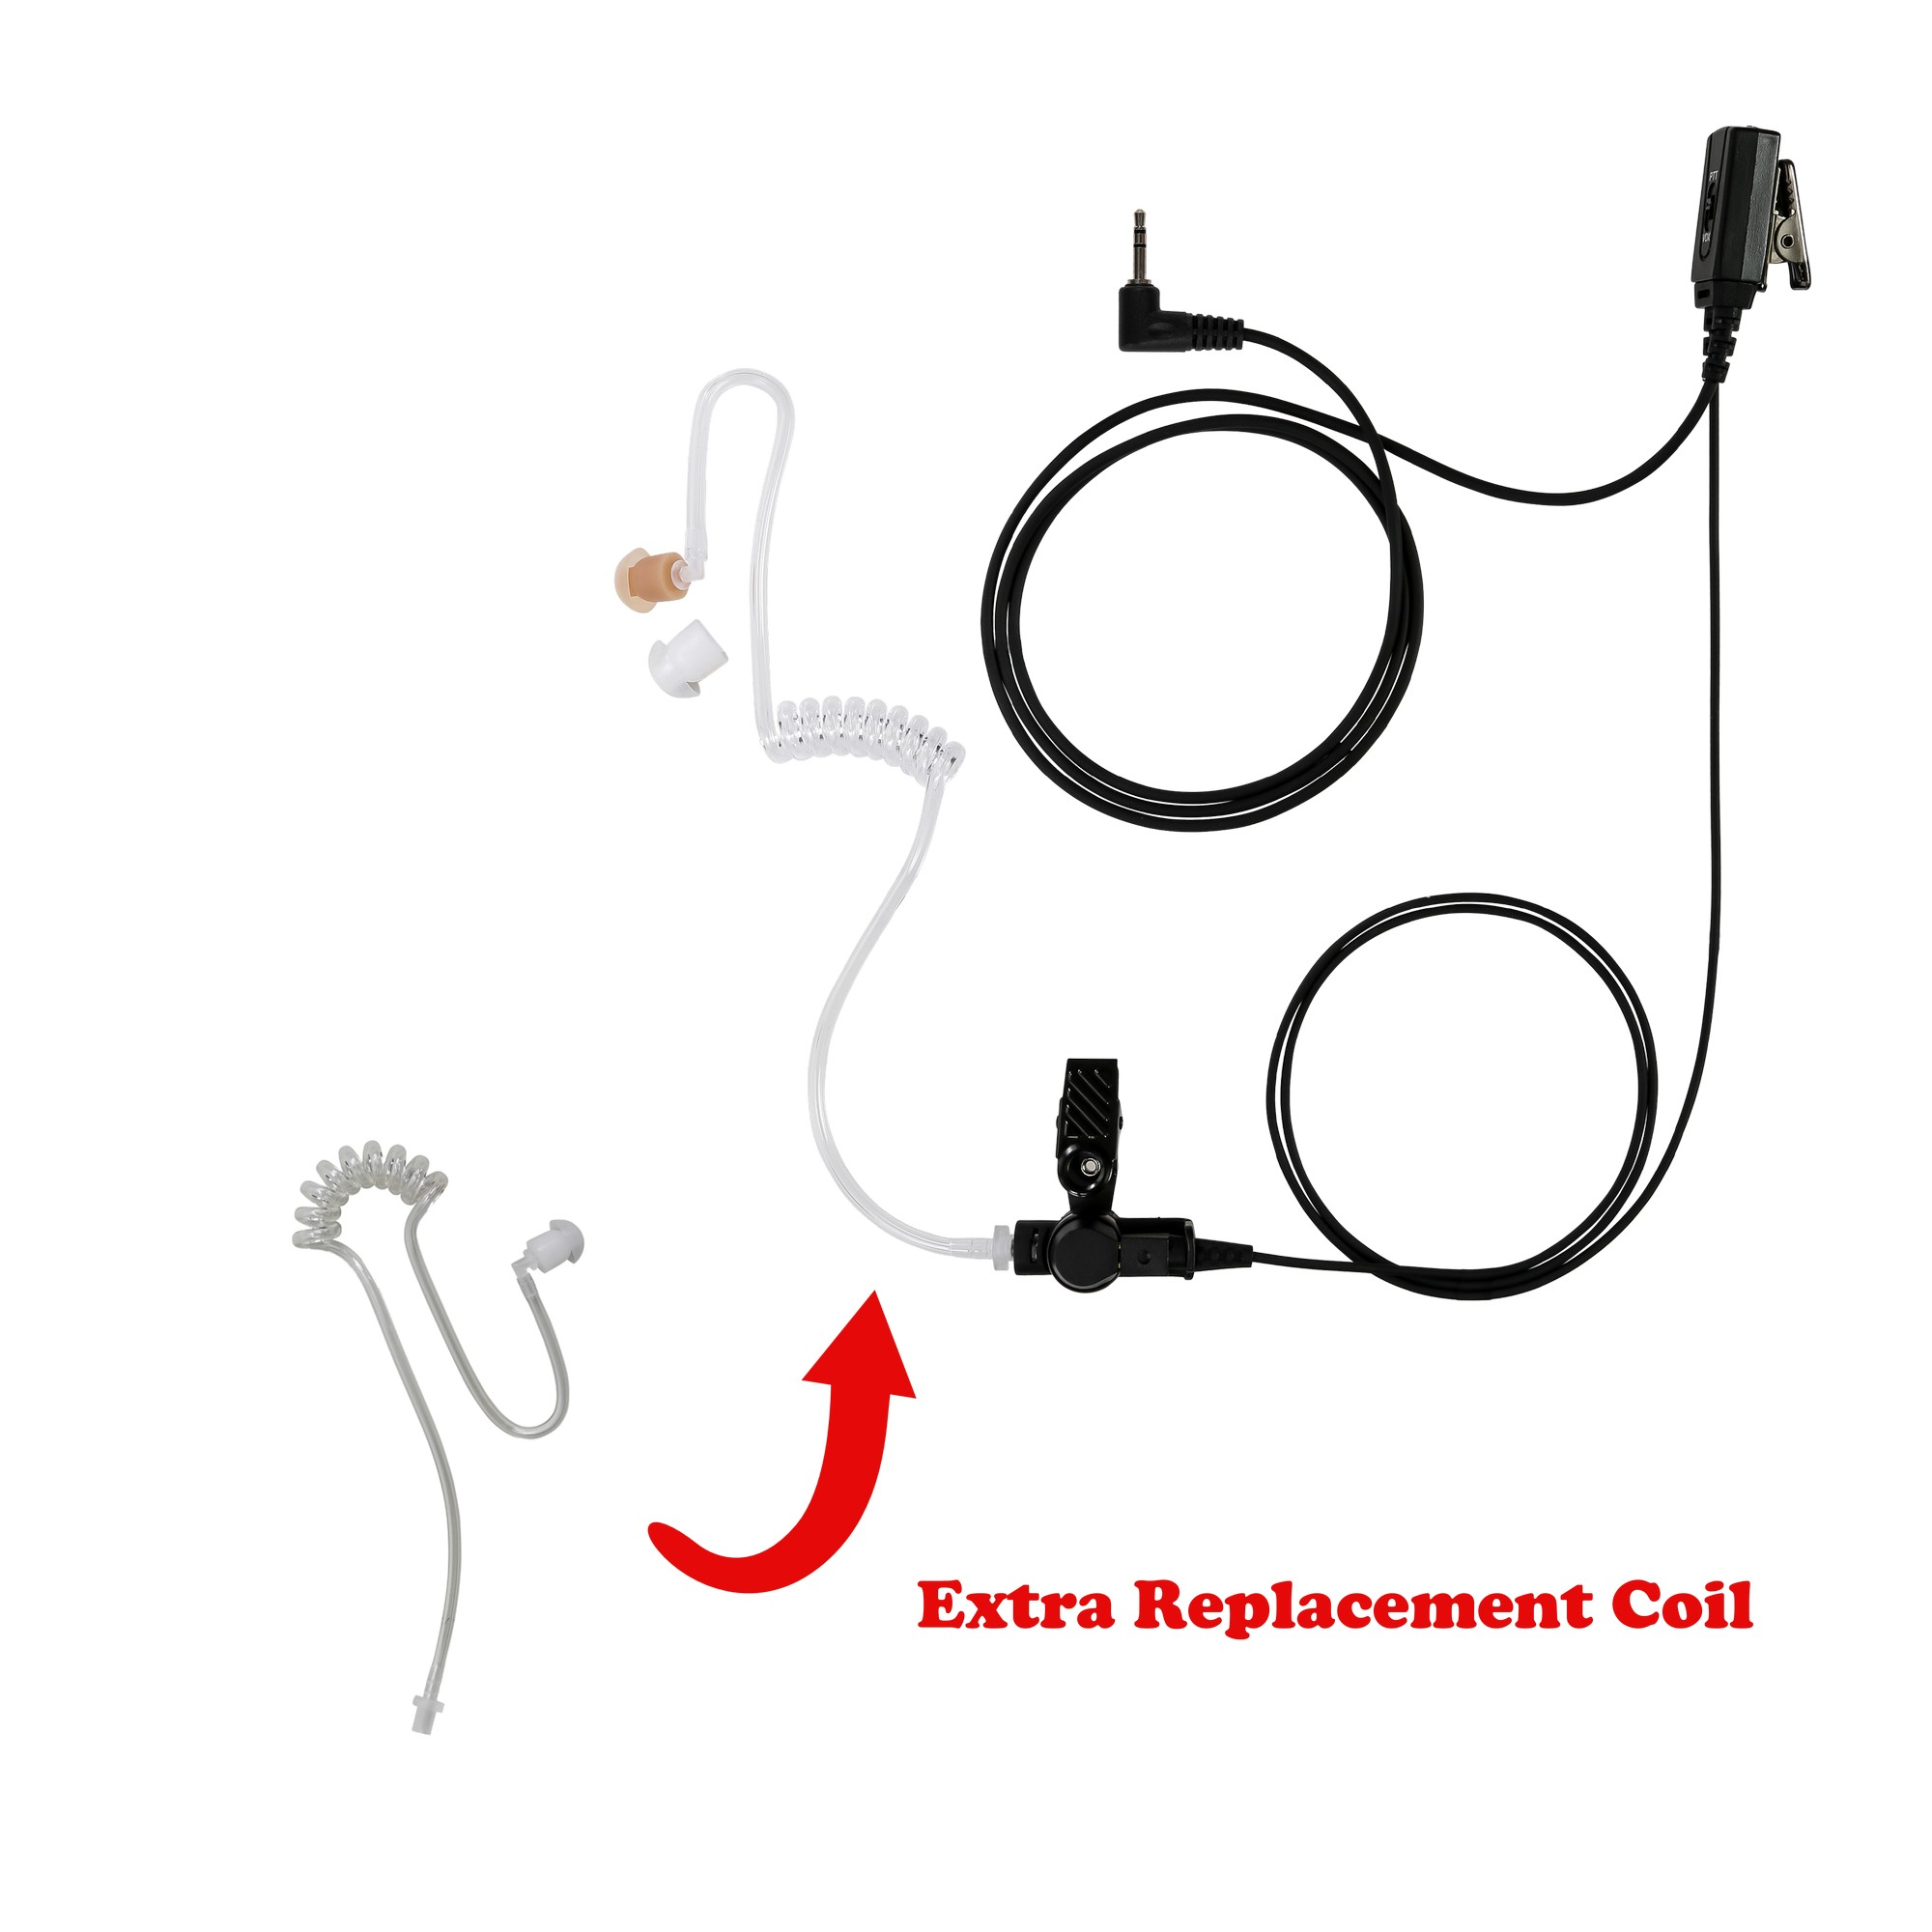 Maxtop ASK2425-M2 1-Wire Clear Coil Surveillance Kit